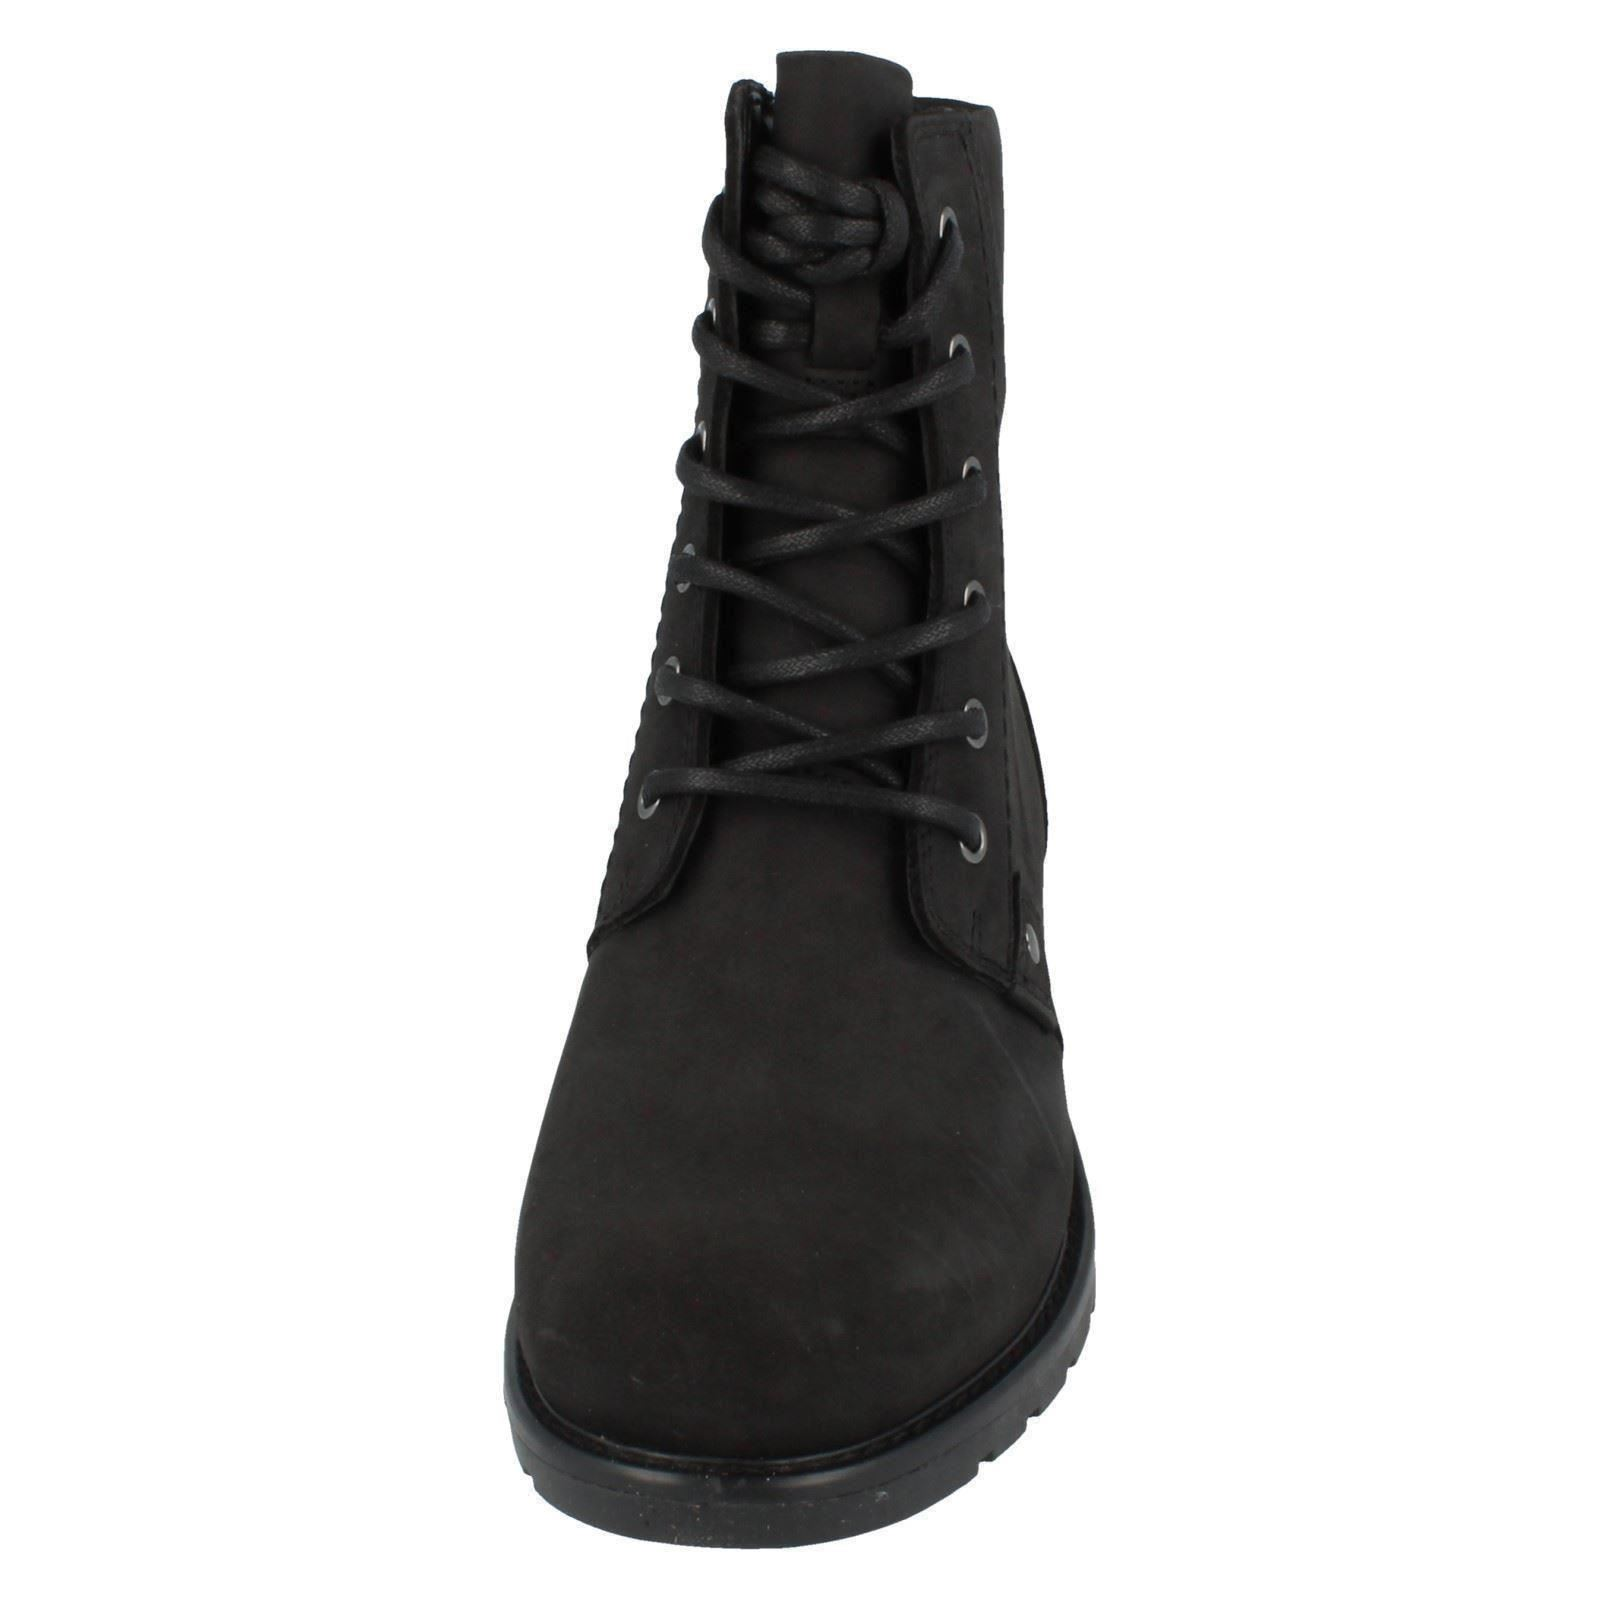 Ladies-Clarks-Casual-Lace-Up-Inside-Zip-Nubuck-Leather-Ankle-Boots-Orinoco-Spice thumbnail 9